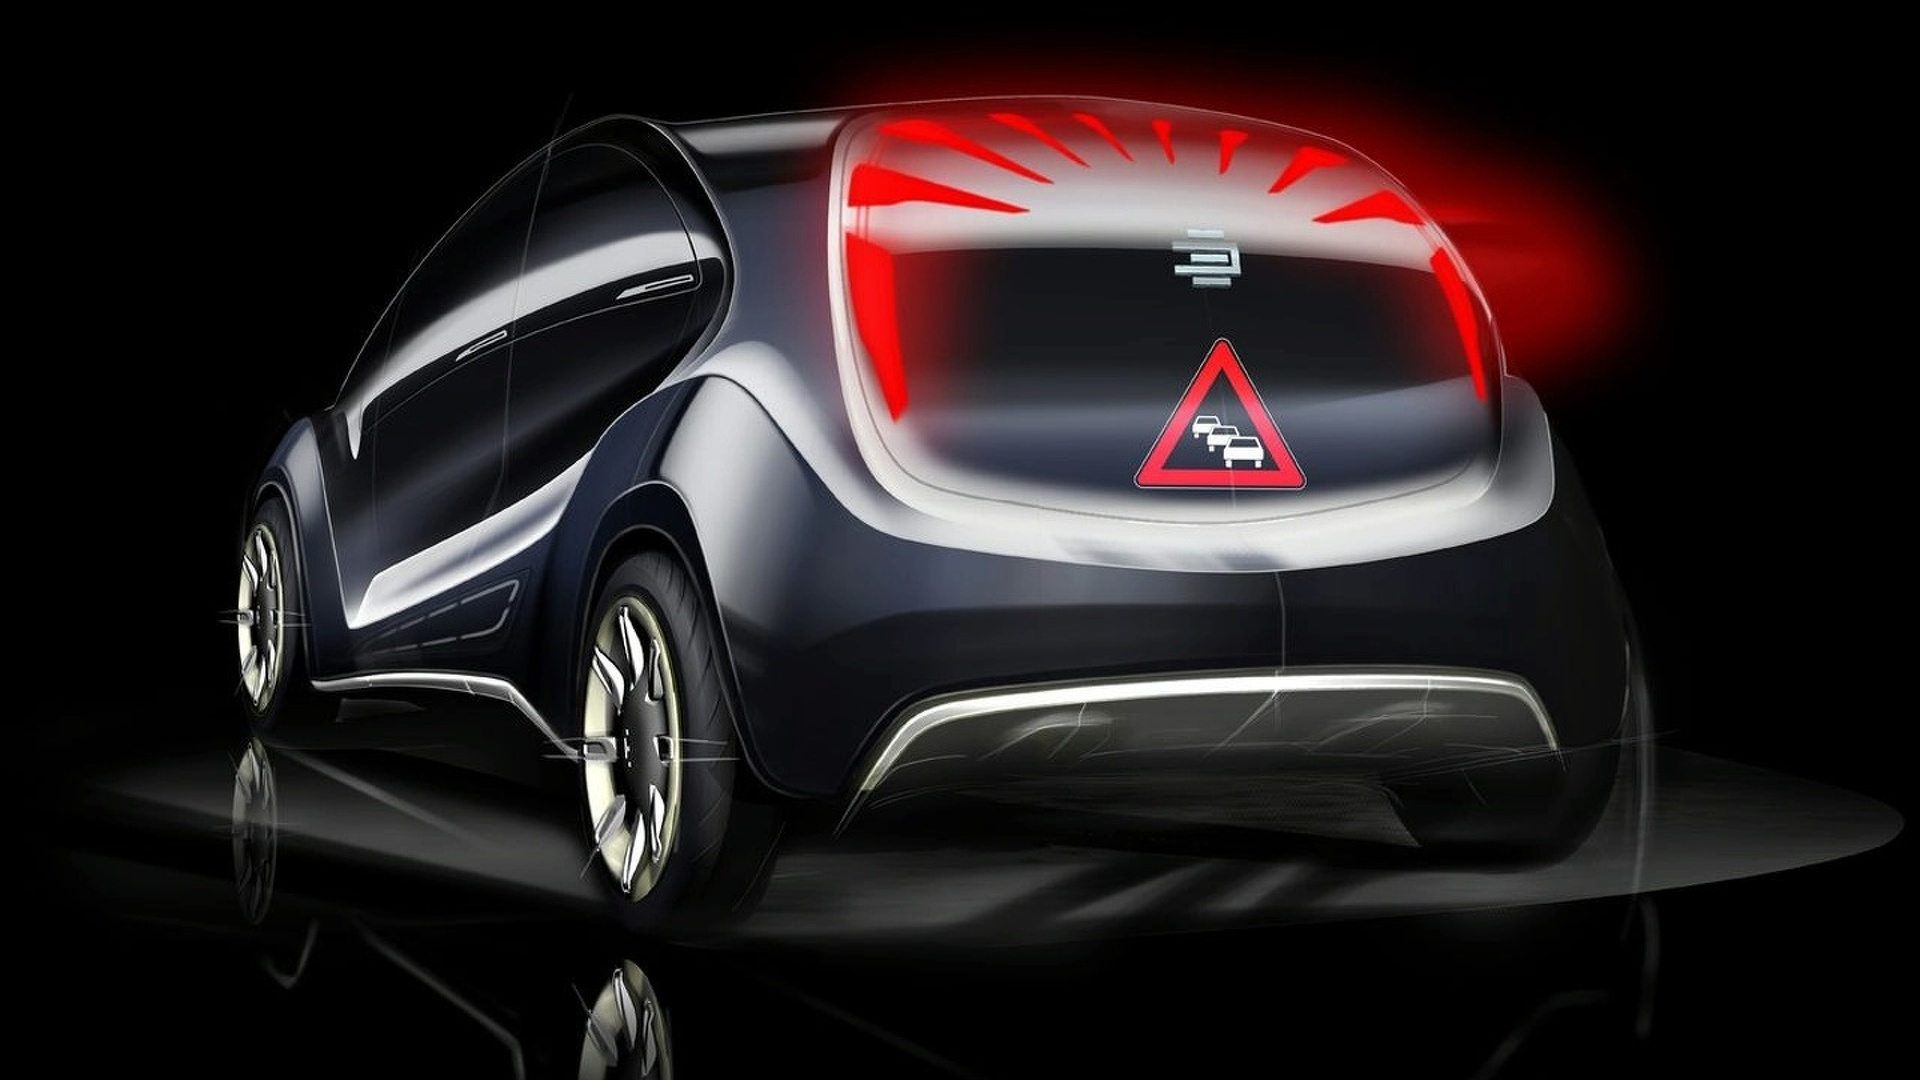 EDAG Light Car Concept to Debut in Geneva